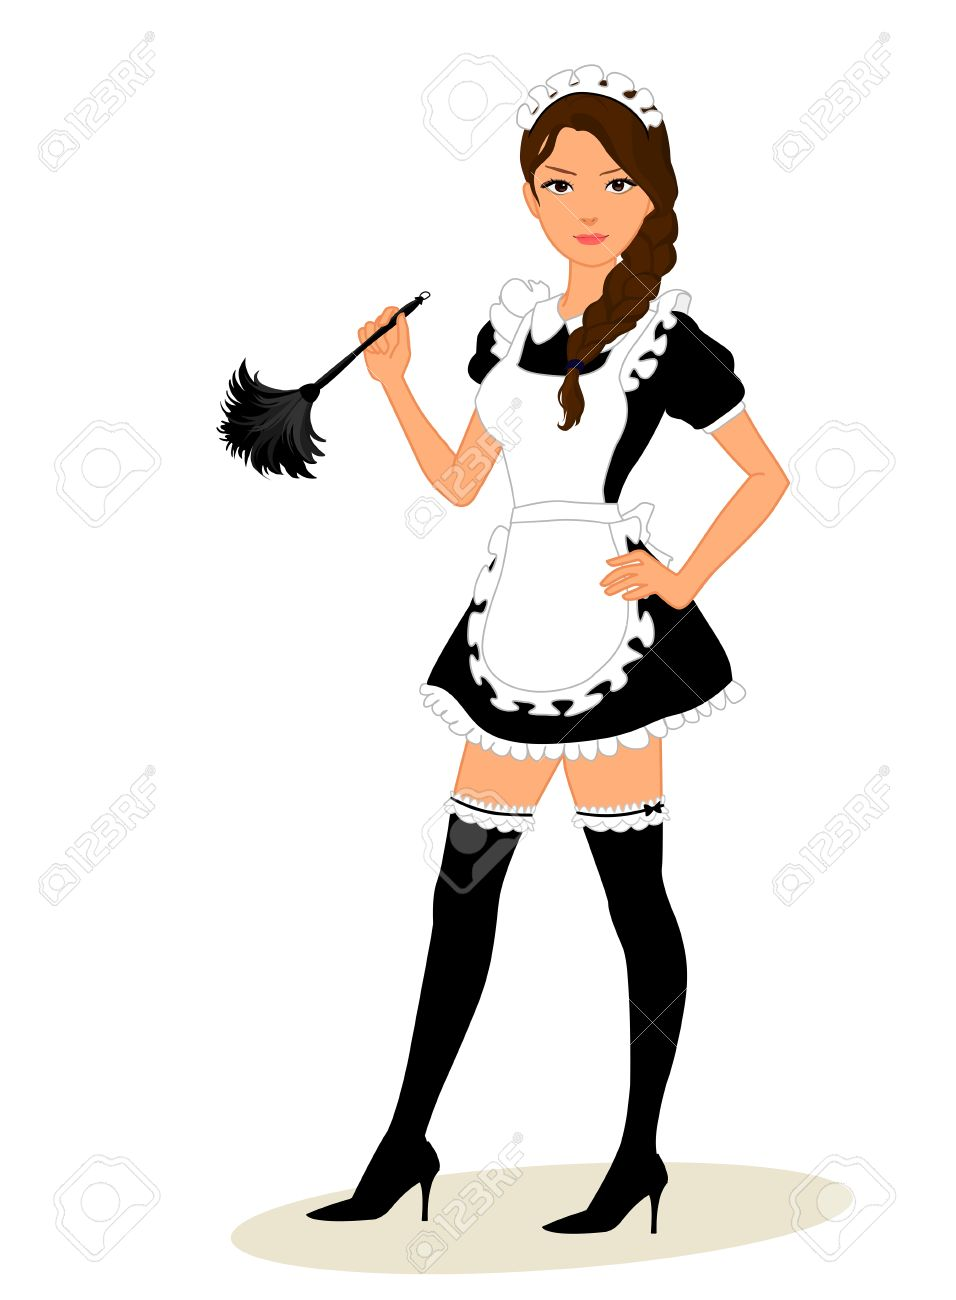 Cute young maid in classic maid dress costume holding a feather duster isolated on white background - 38725346